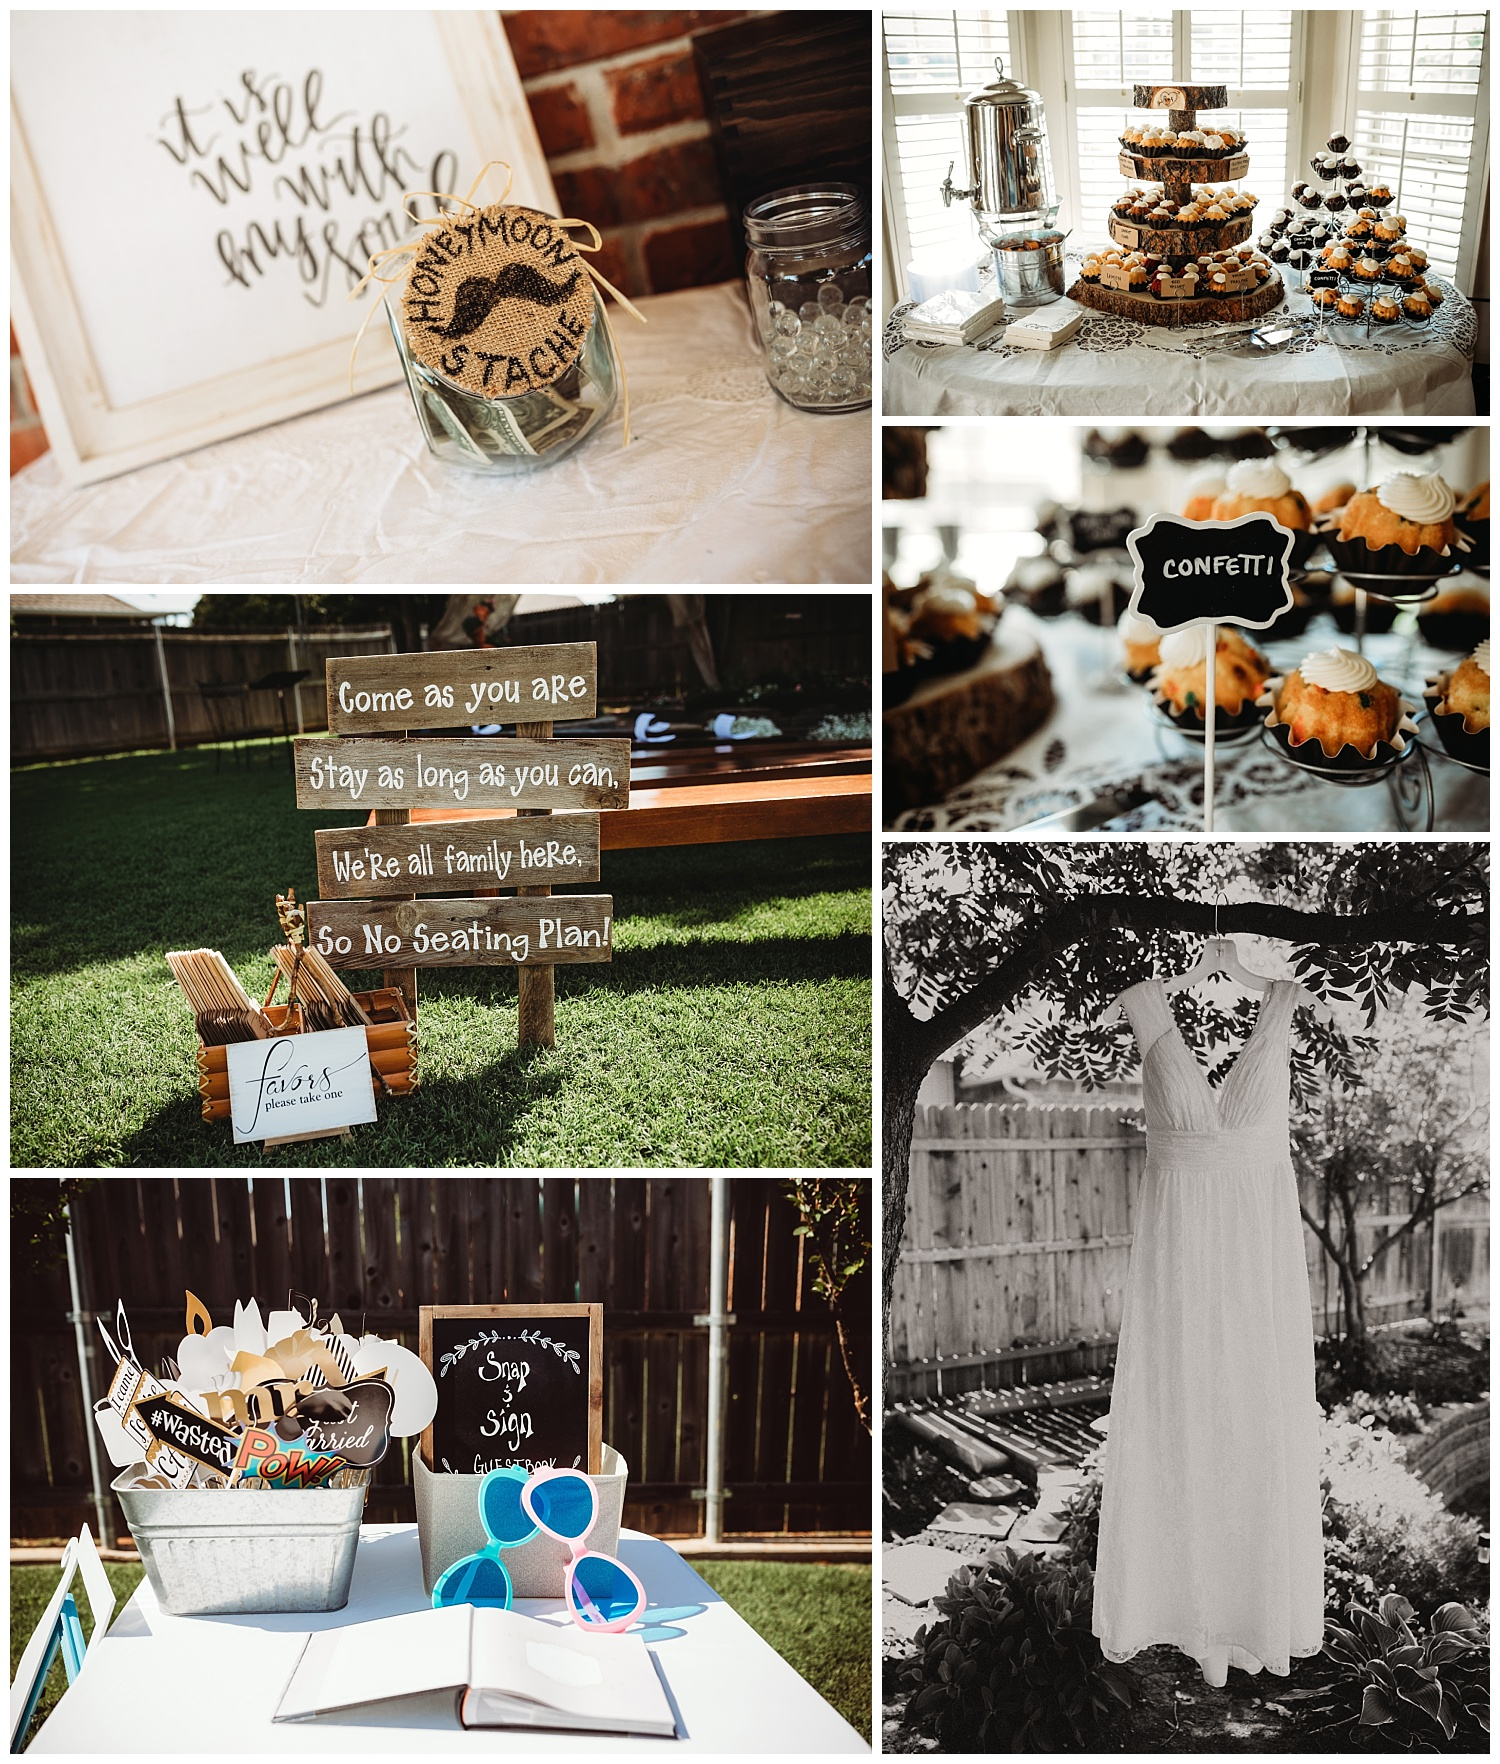 I love wedding reception details!